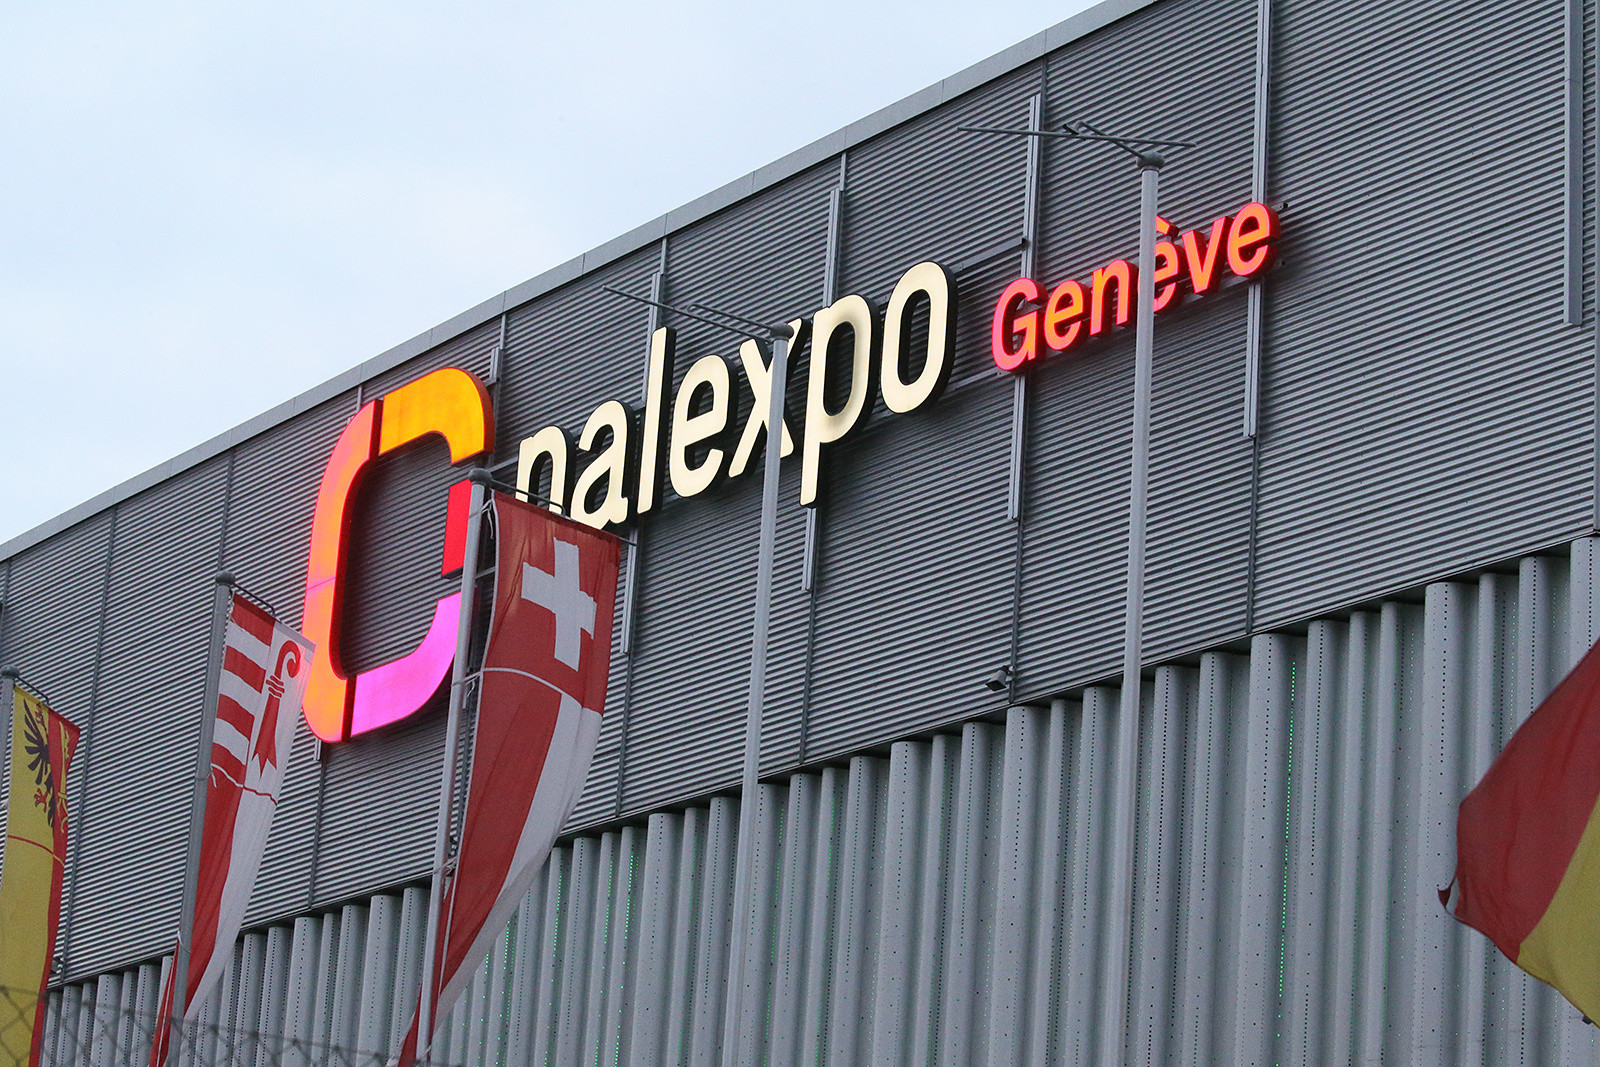 The Palexpo arena has been the site of every edition of the Geneva SX, including back when it was part of the Monster Energy Supercross series. If you're looking for the ultimate in an easy-to-access European race, this might be it. The airport is within easy walking distance to the host hotel, and the arena was literally across the street from there.